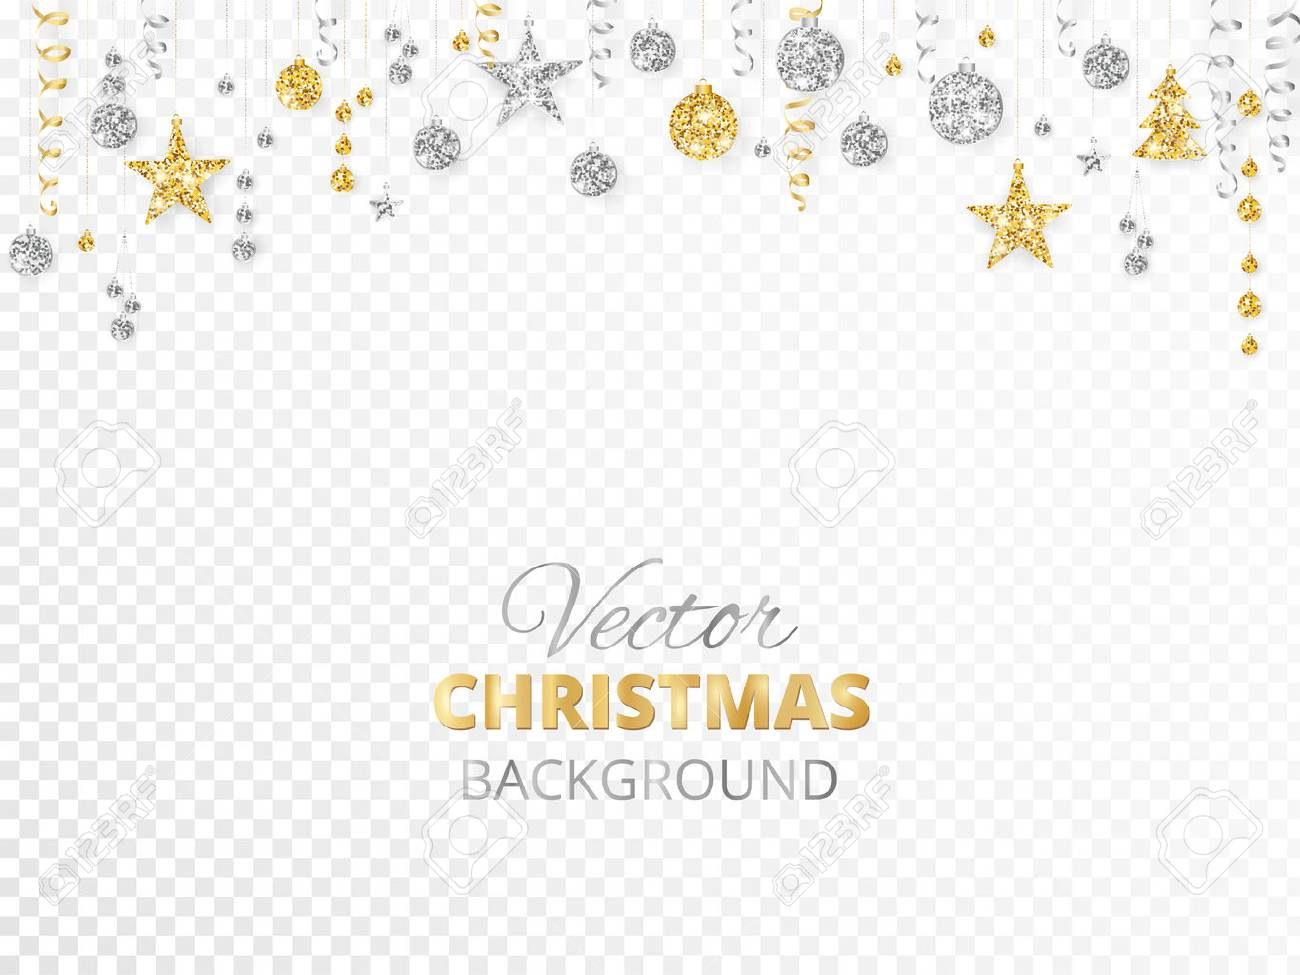 Sparkling Christmas Glitter Ornaments Isolated On Transparent Background Gold And Silver Fiesta Border Garland